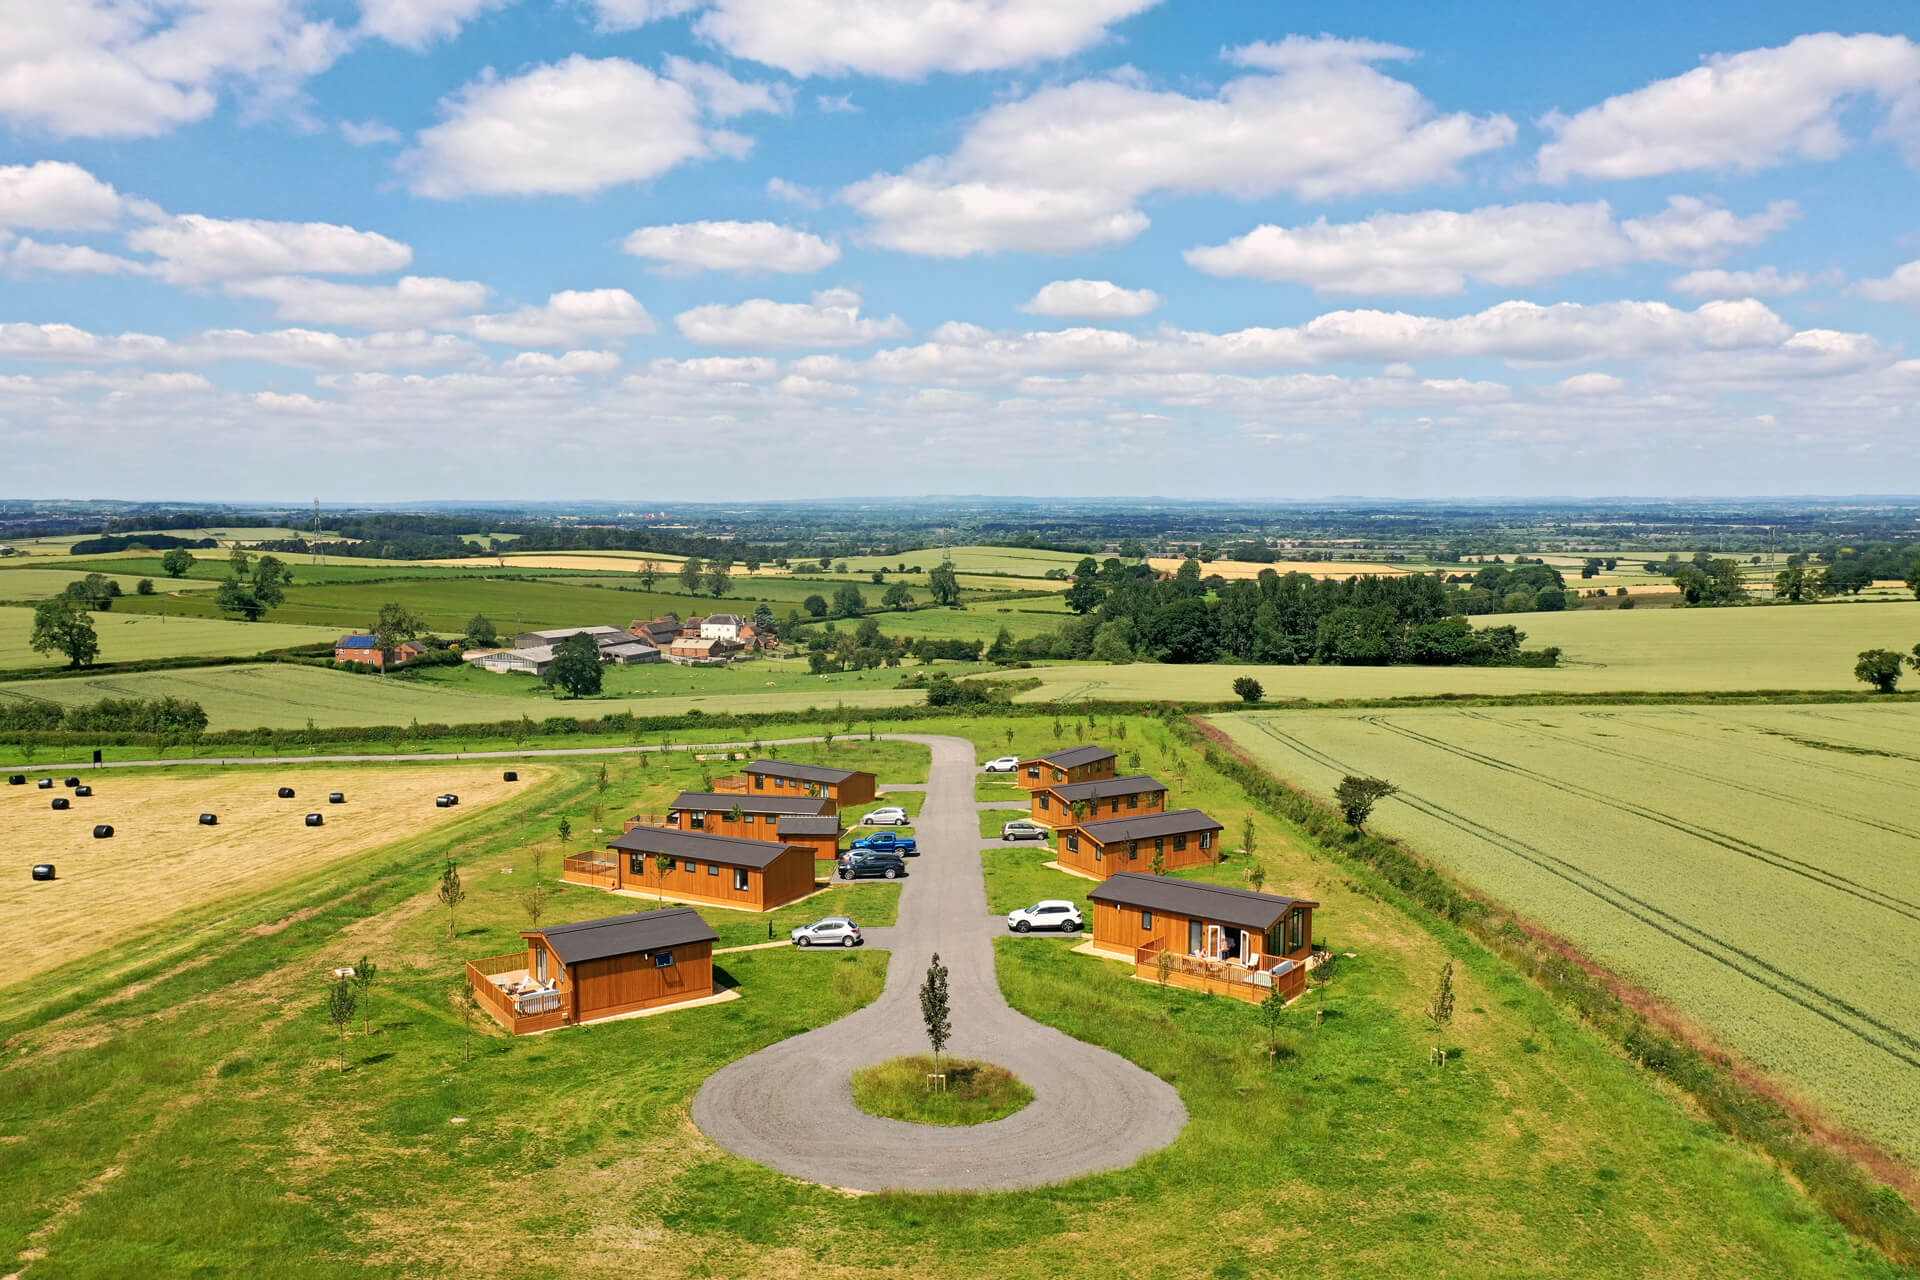 Aerial view of eight wooden lodges at the Knights Lodges of Bretby holiday park